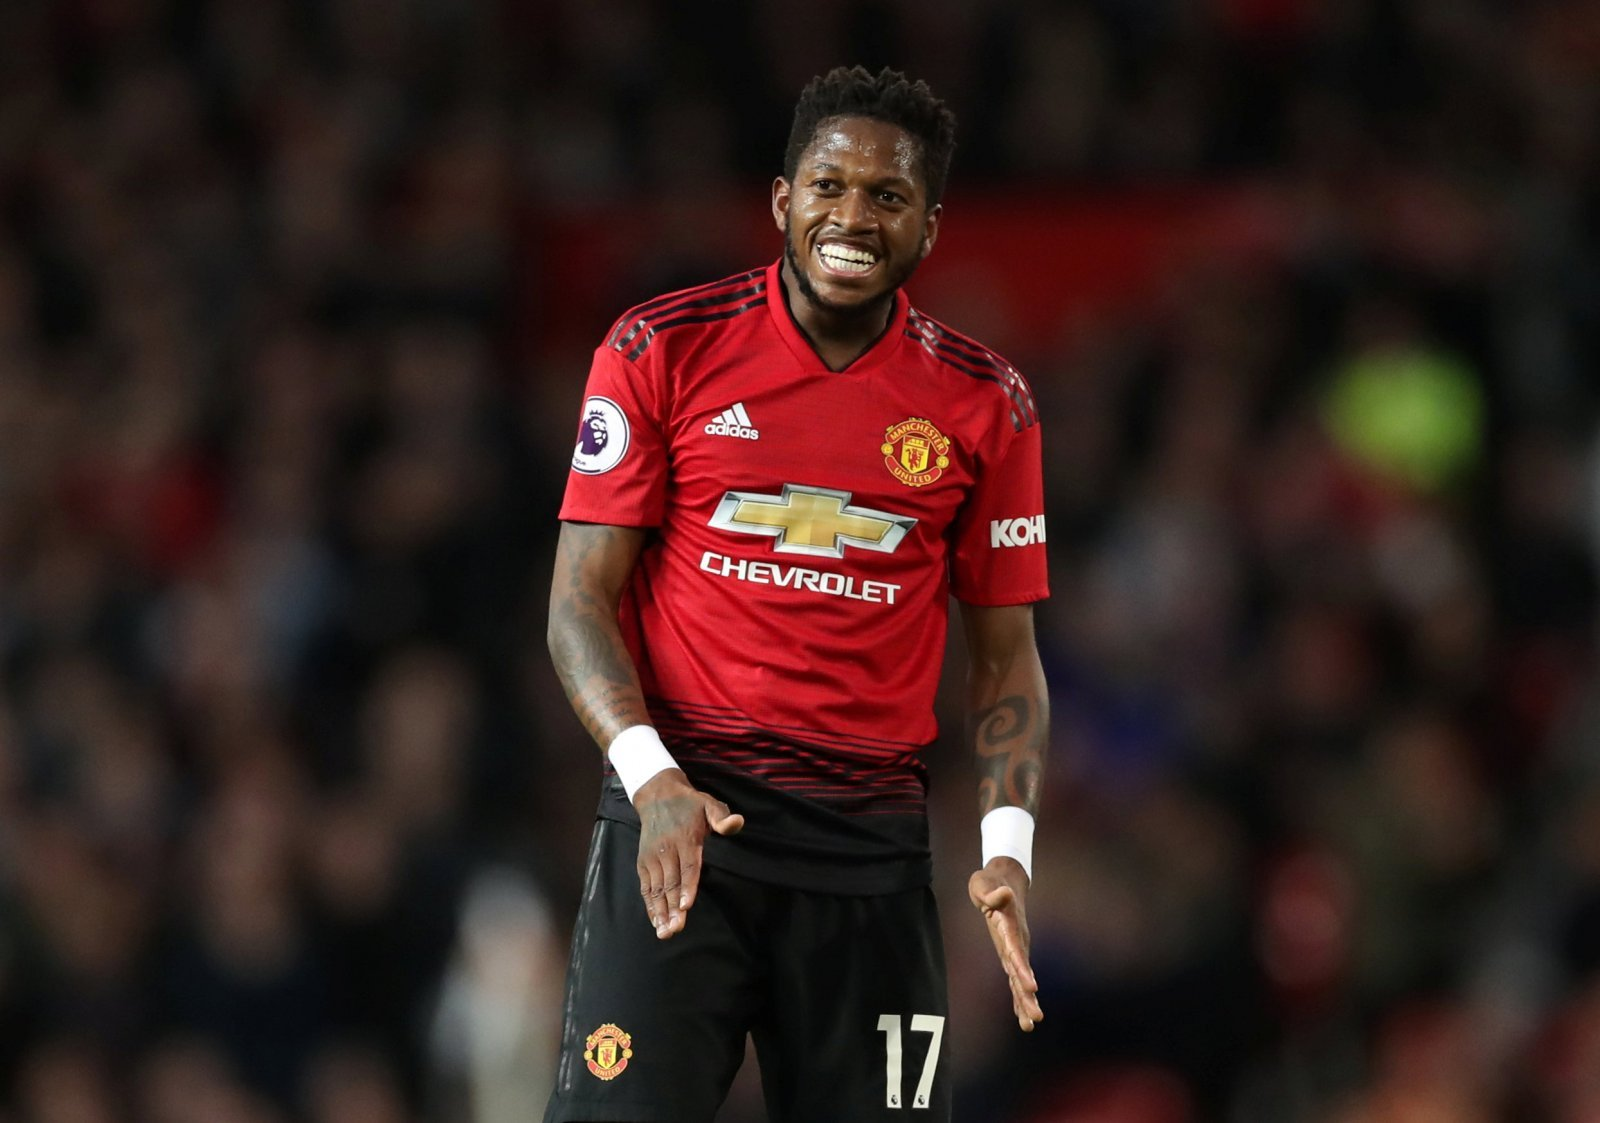 Manchester United: Fans are calling for Fred to be played by Ole Gunnar Solskjaer